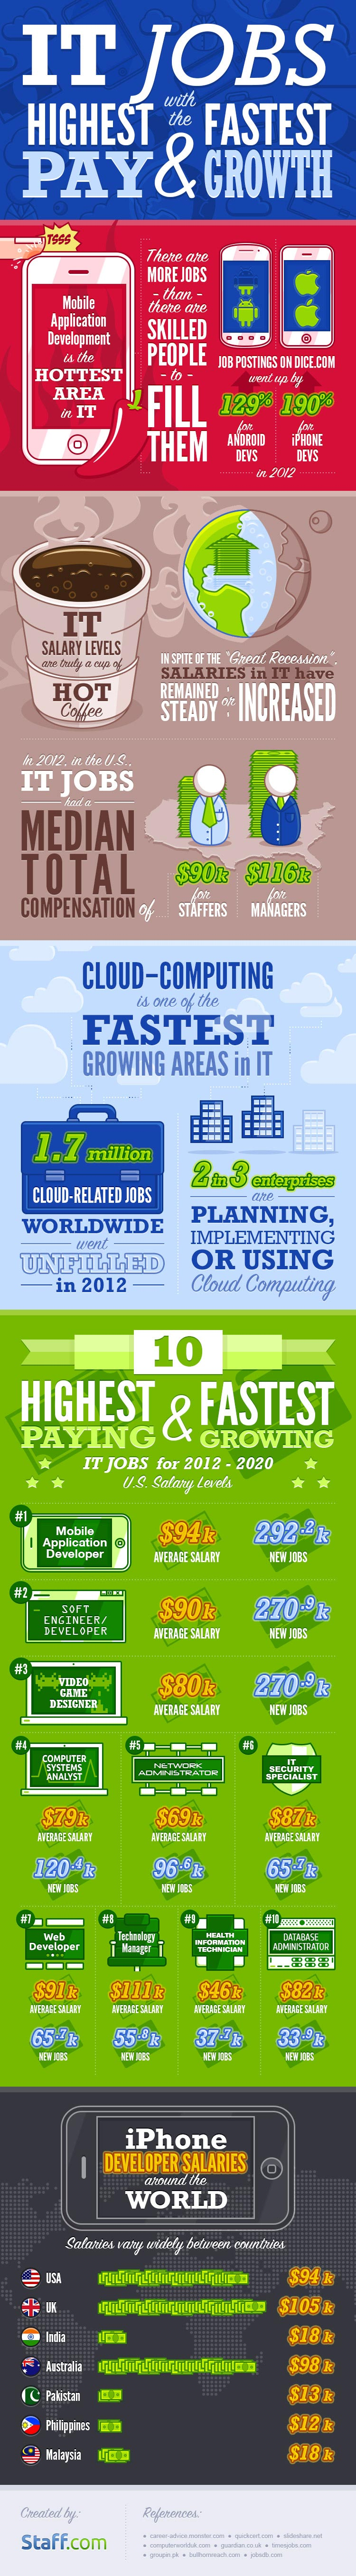 IT Jobs Projections-Infographic